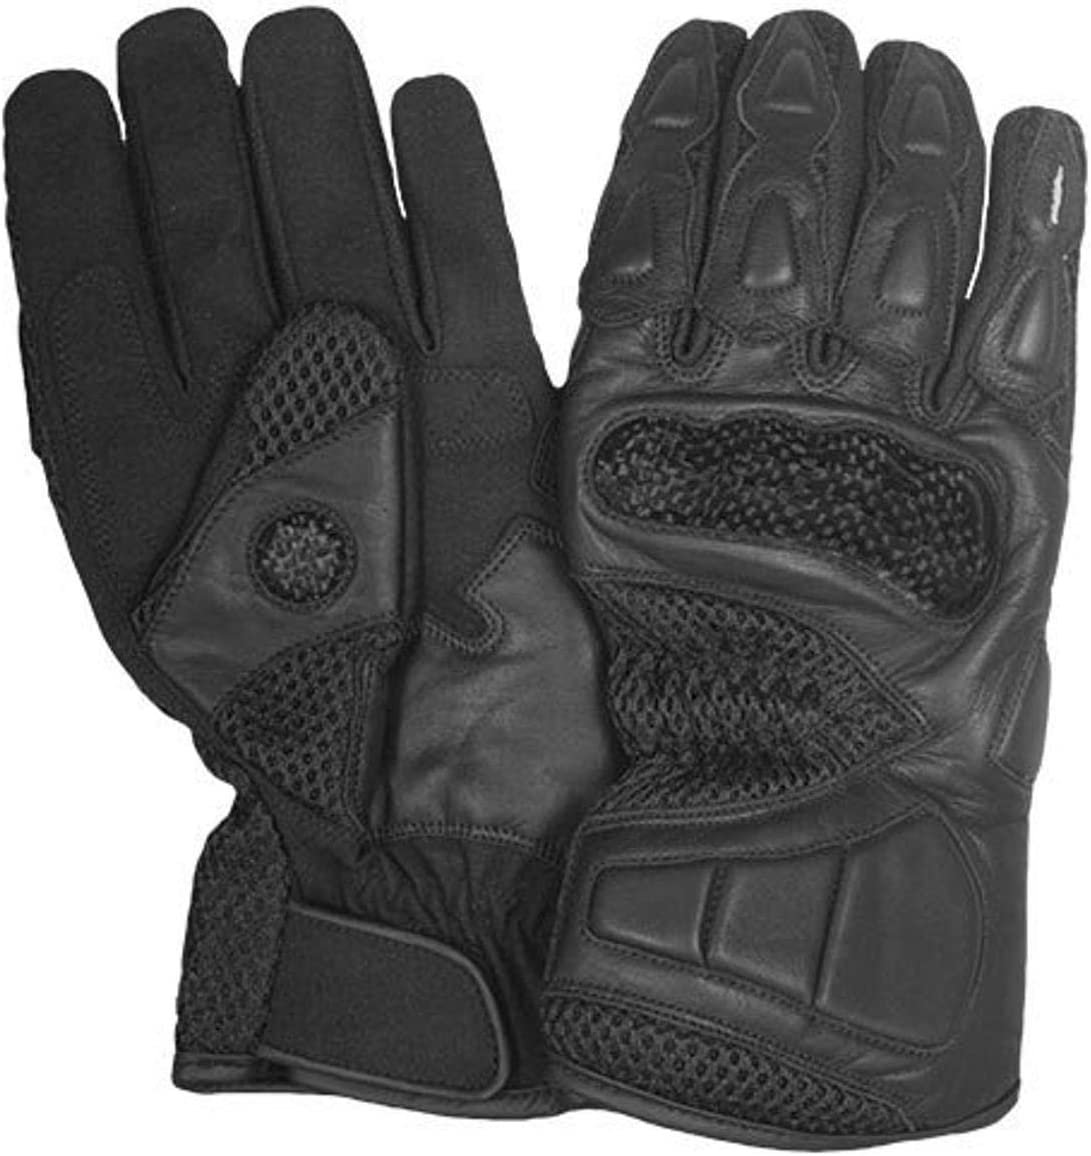 Fox Fresno Mall Outdoor Products New sales Scorpion Gloves Knuckle Tactical Hard